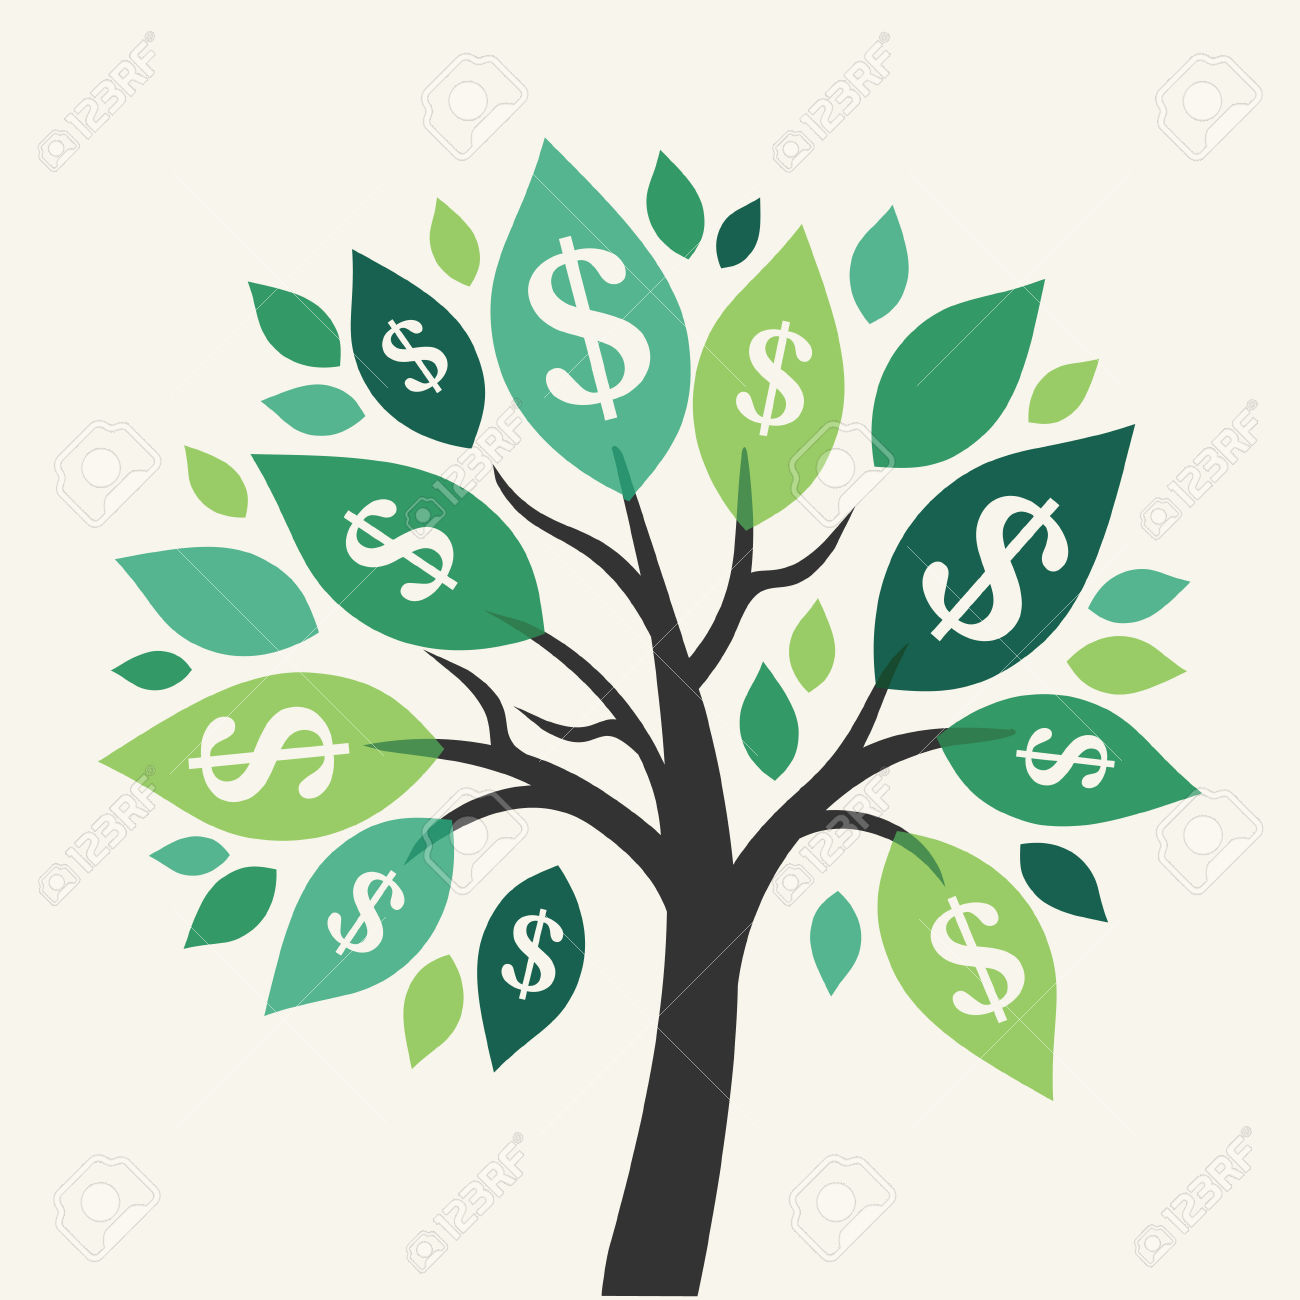 money tree clipart clipground